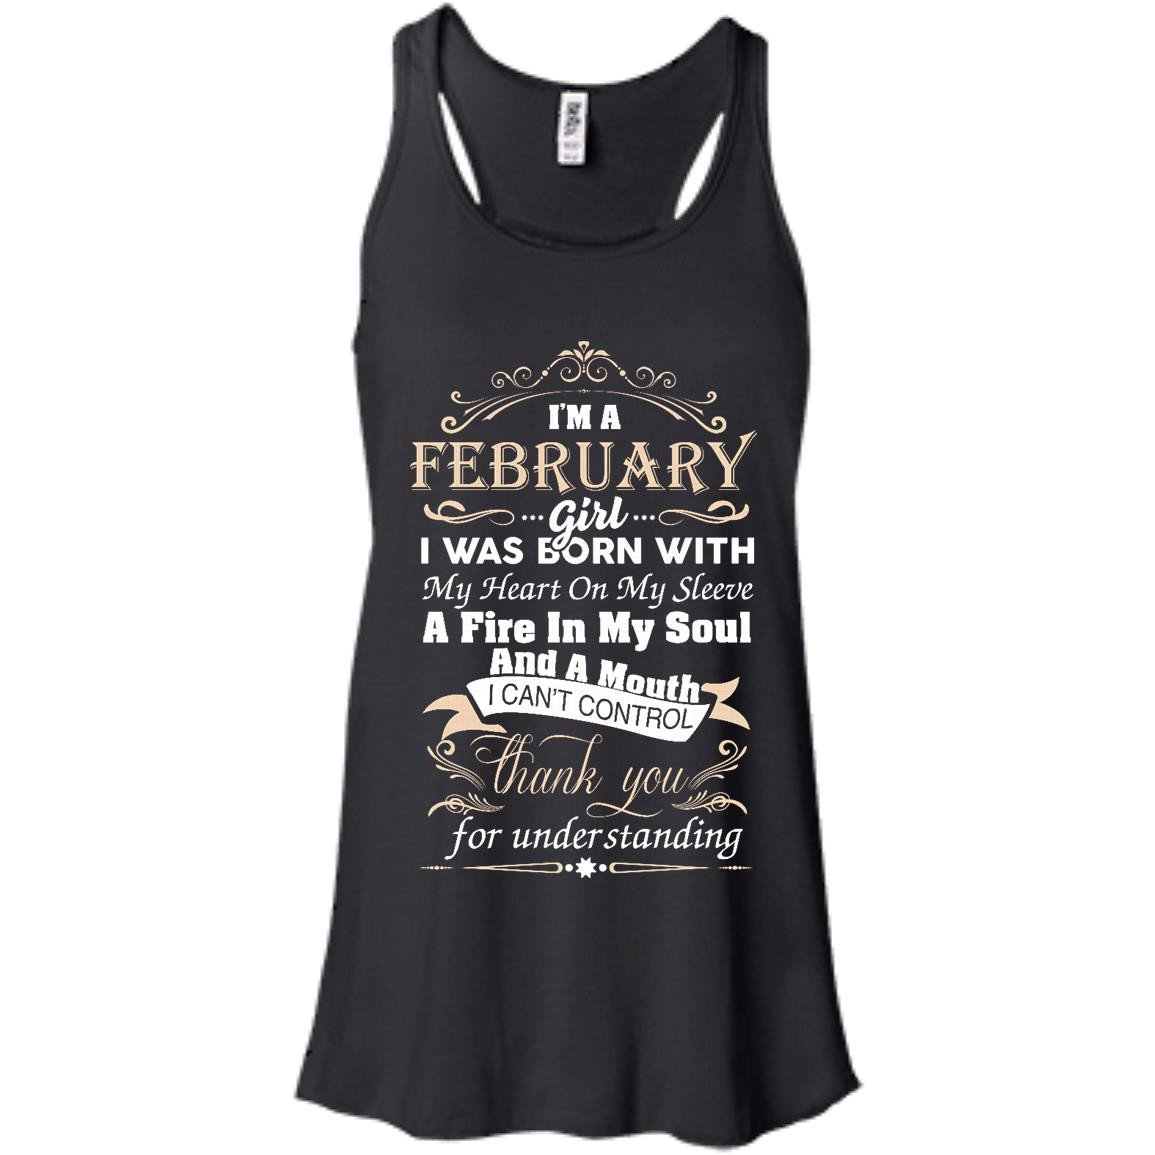 I am a February girl birth day T shirt gift